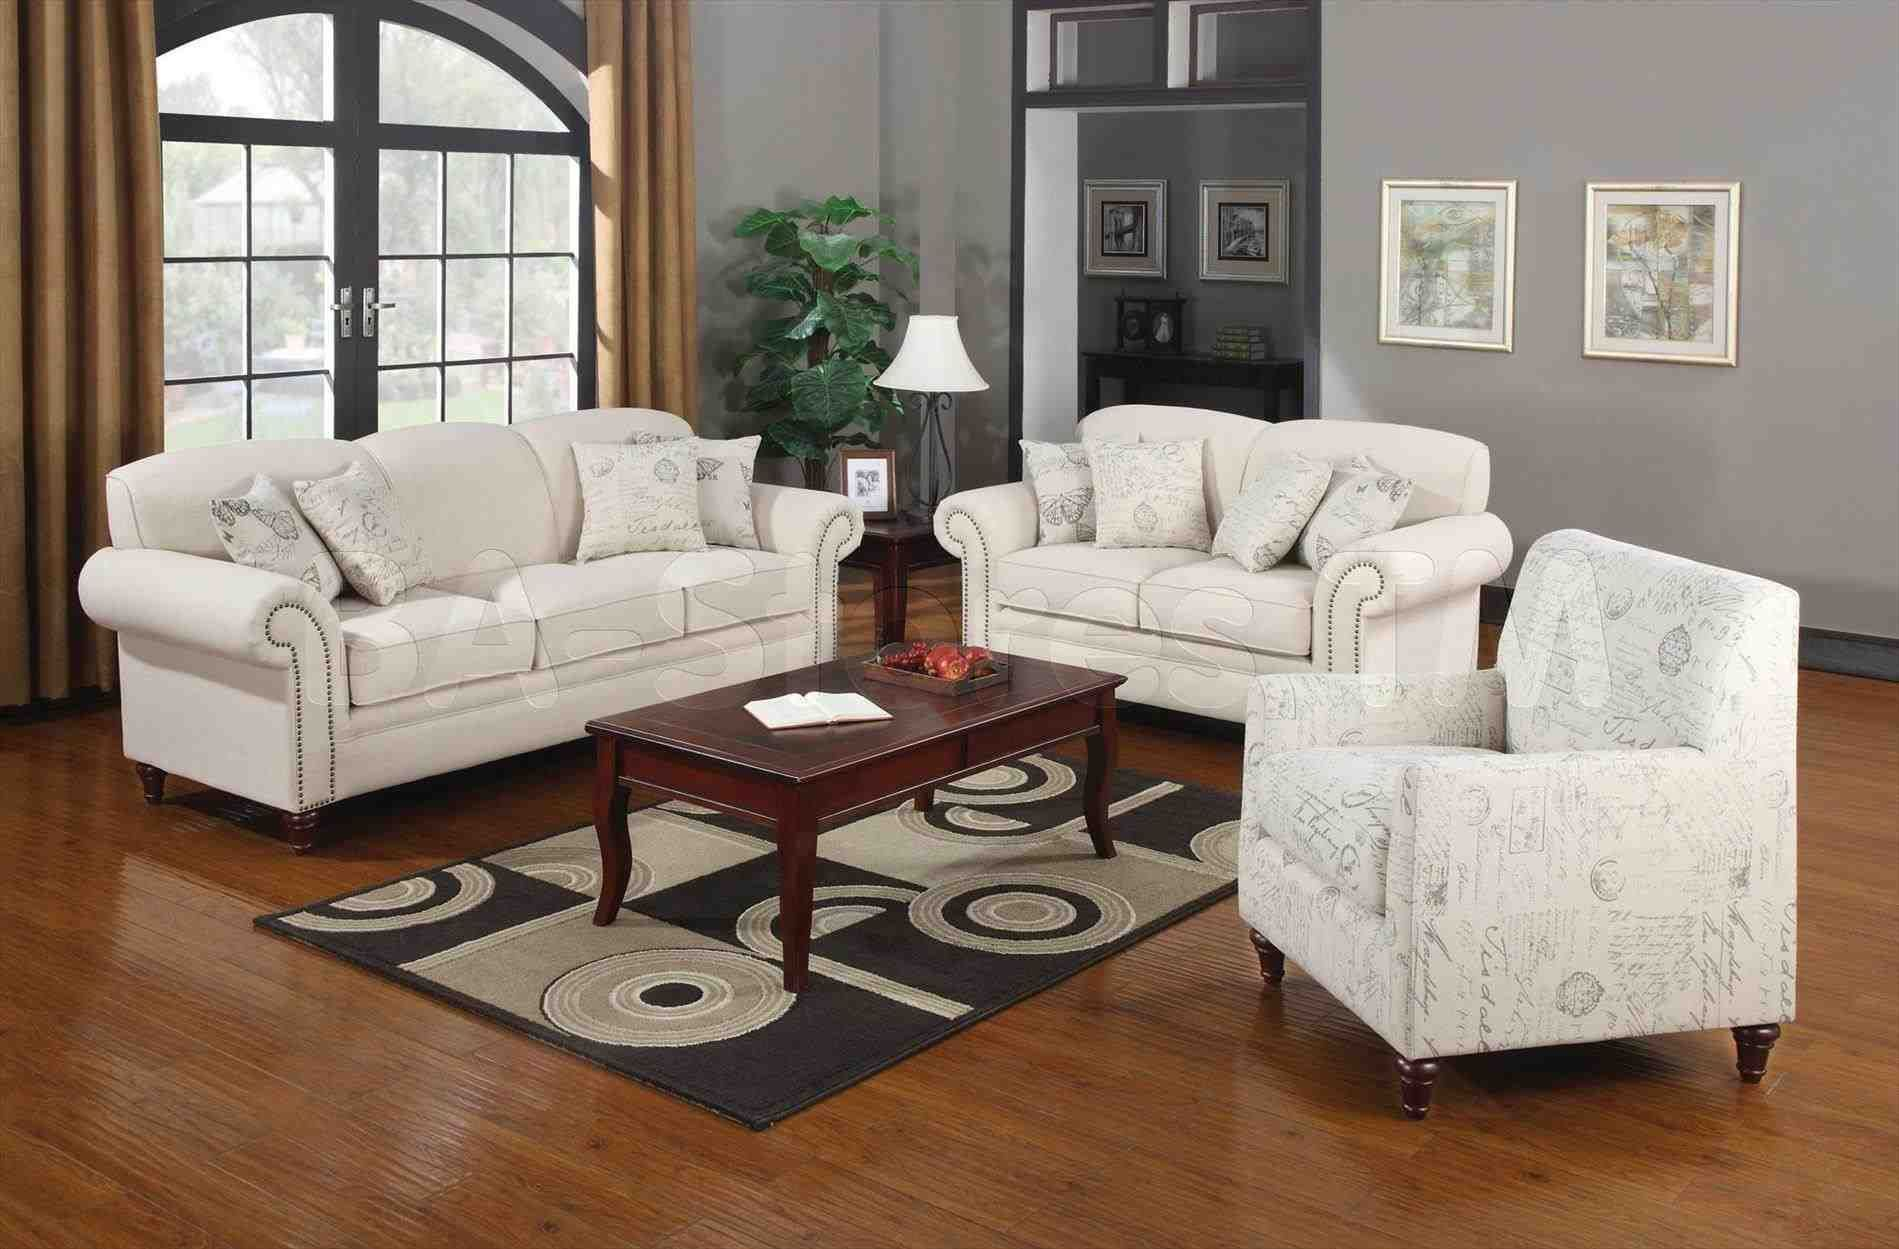 Cheapest Living Room Furniture Candice Olson Cheap Sets For Sale Sofa Set Price India Online Prices Philippines White Up Full Size Of